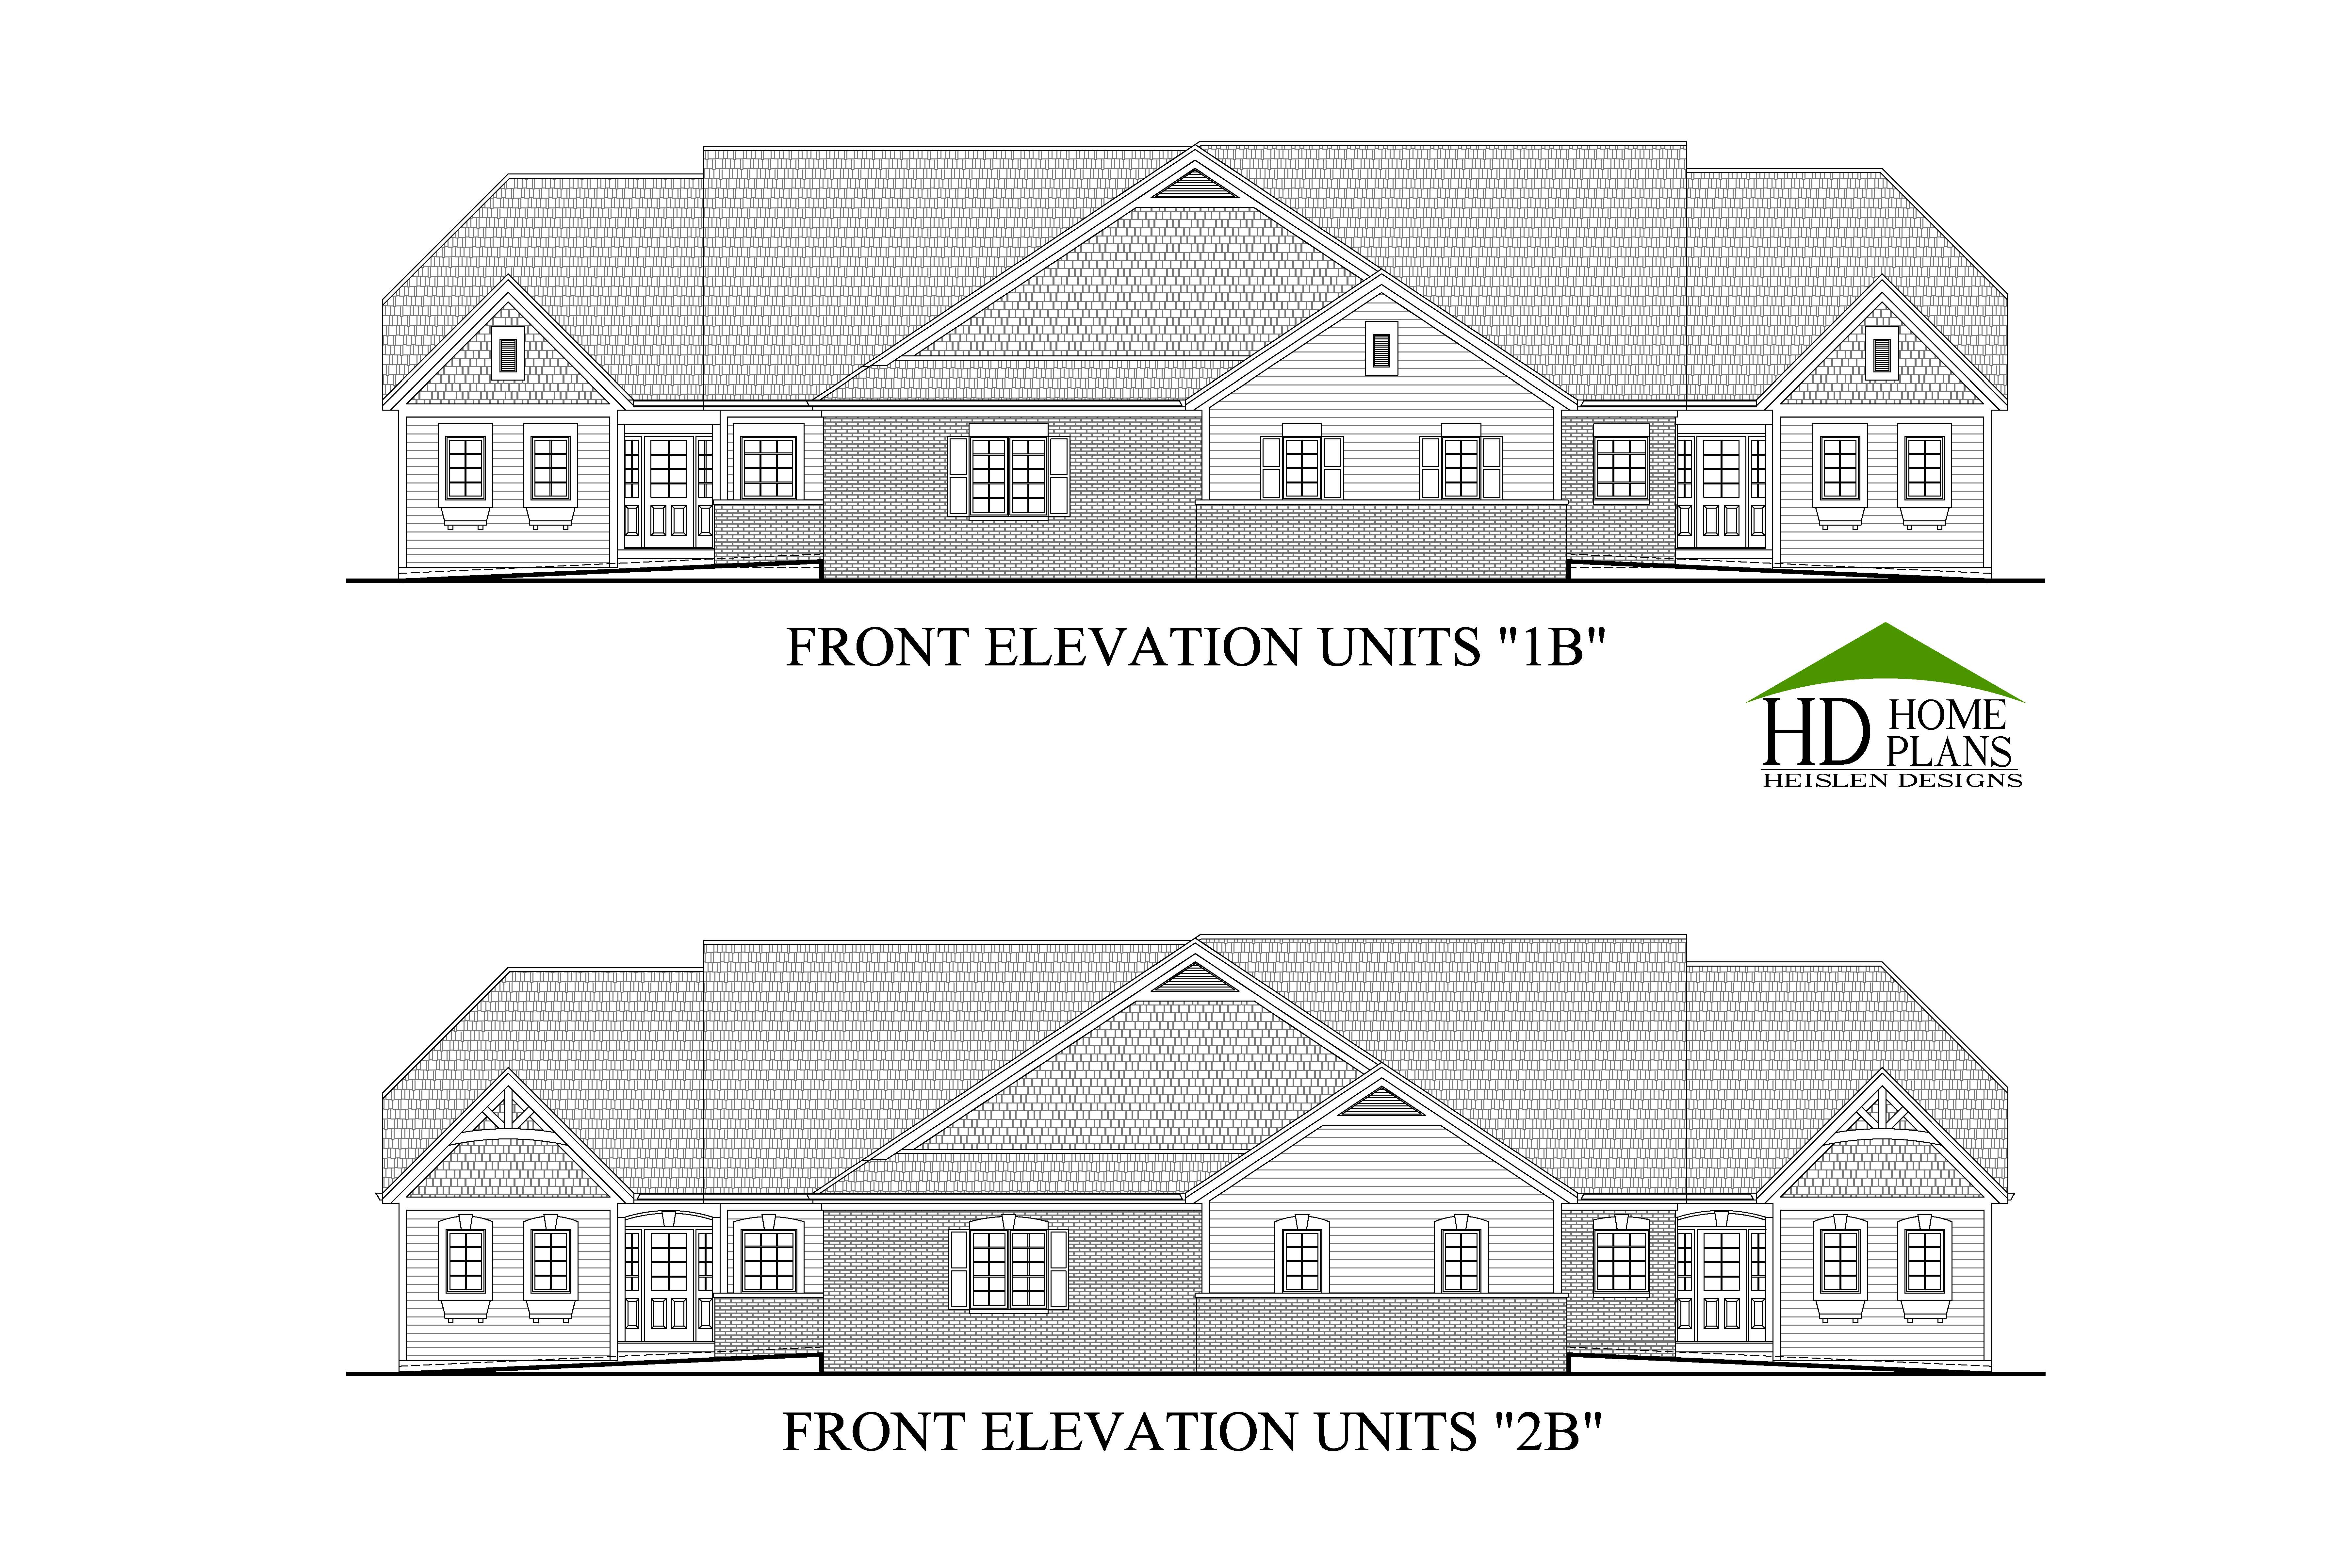 Legend Ranch Town Homes of Mequon – HEISLEN DESIGNS on 28x44 house plans, 20x25 house plans, 30 x 40 2 story pole barn house plans, 28x38 house plans, 14x18 house plans, 24x30 house plans, 30x24 house plans, 28x34 house plans, 16x36 house plans, 2 bedroom ranch floor plans, 8x12 house plans, 24x46 house plans, 36x24 house plans, 50x70 house plans, cottage house plans, 24x24 house plans, small modular homes floor plans, 24x32 house plans, 2 story saltbox house plans, 12x18 house plans,